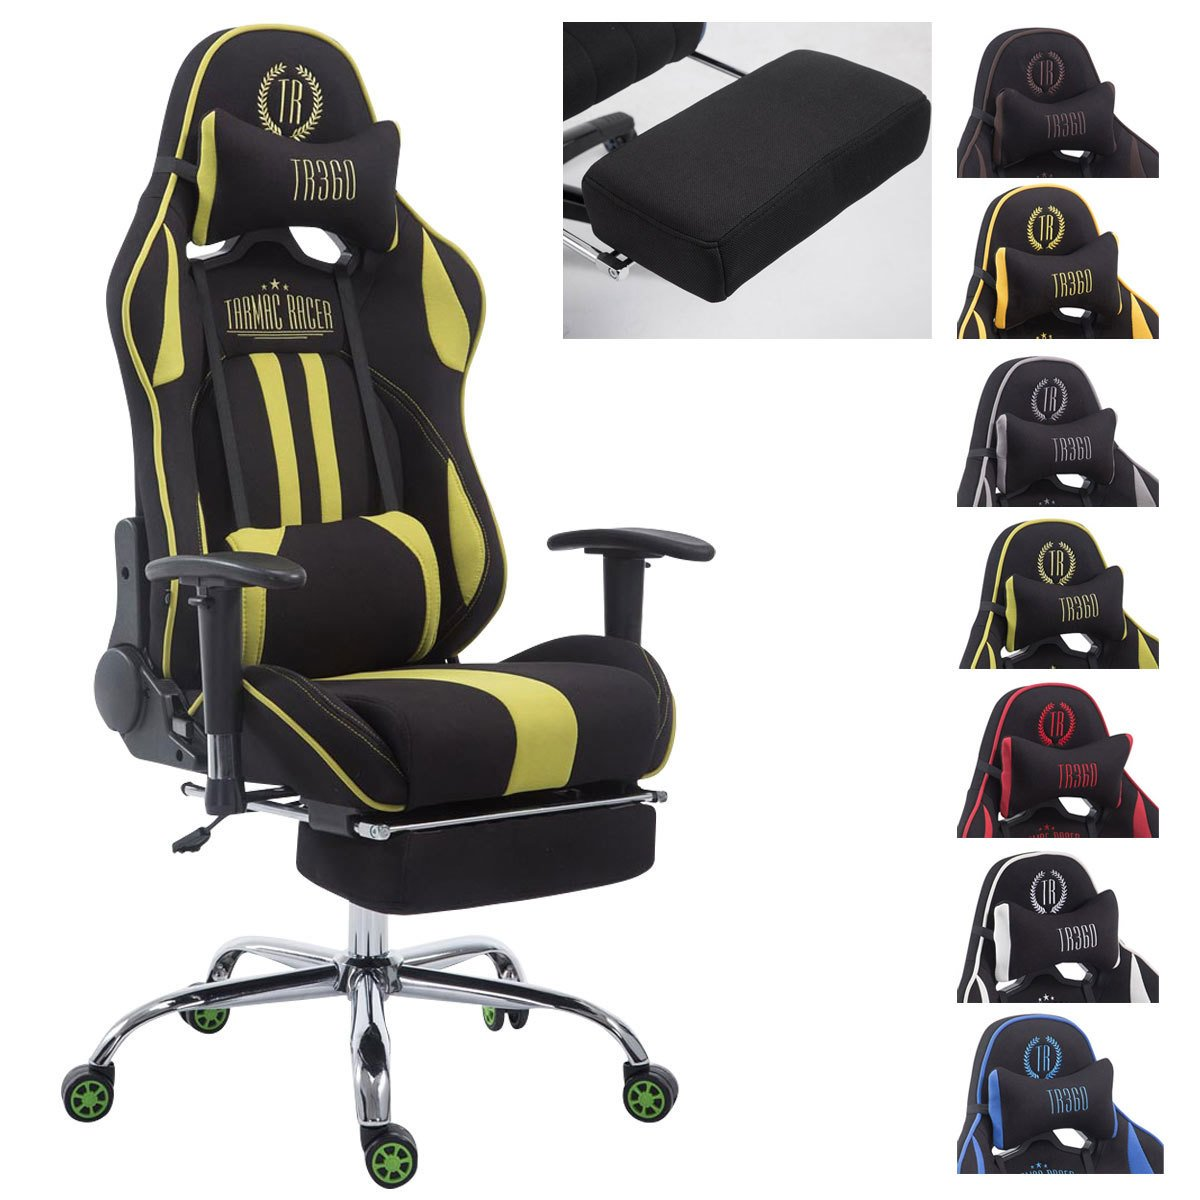 CLP Silla Racing XL Limit V2 Tapizada en Tela I Silla Gaming con Soporte Metal I Silla Oficina con Ruedas I Silla Gamer Regulable en Altura I Color: ...